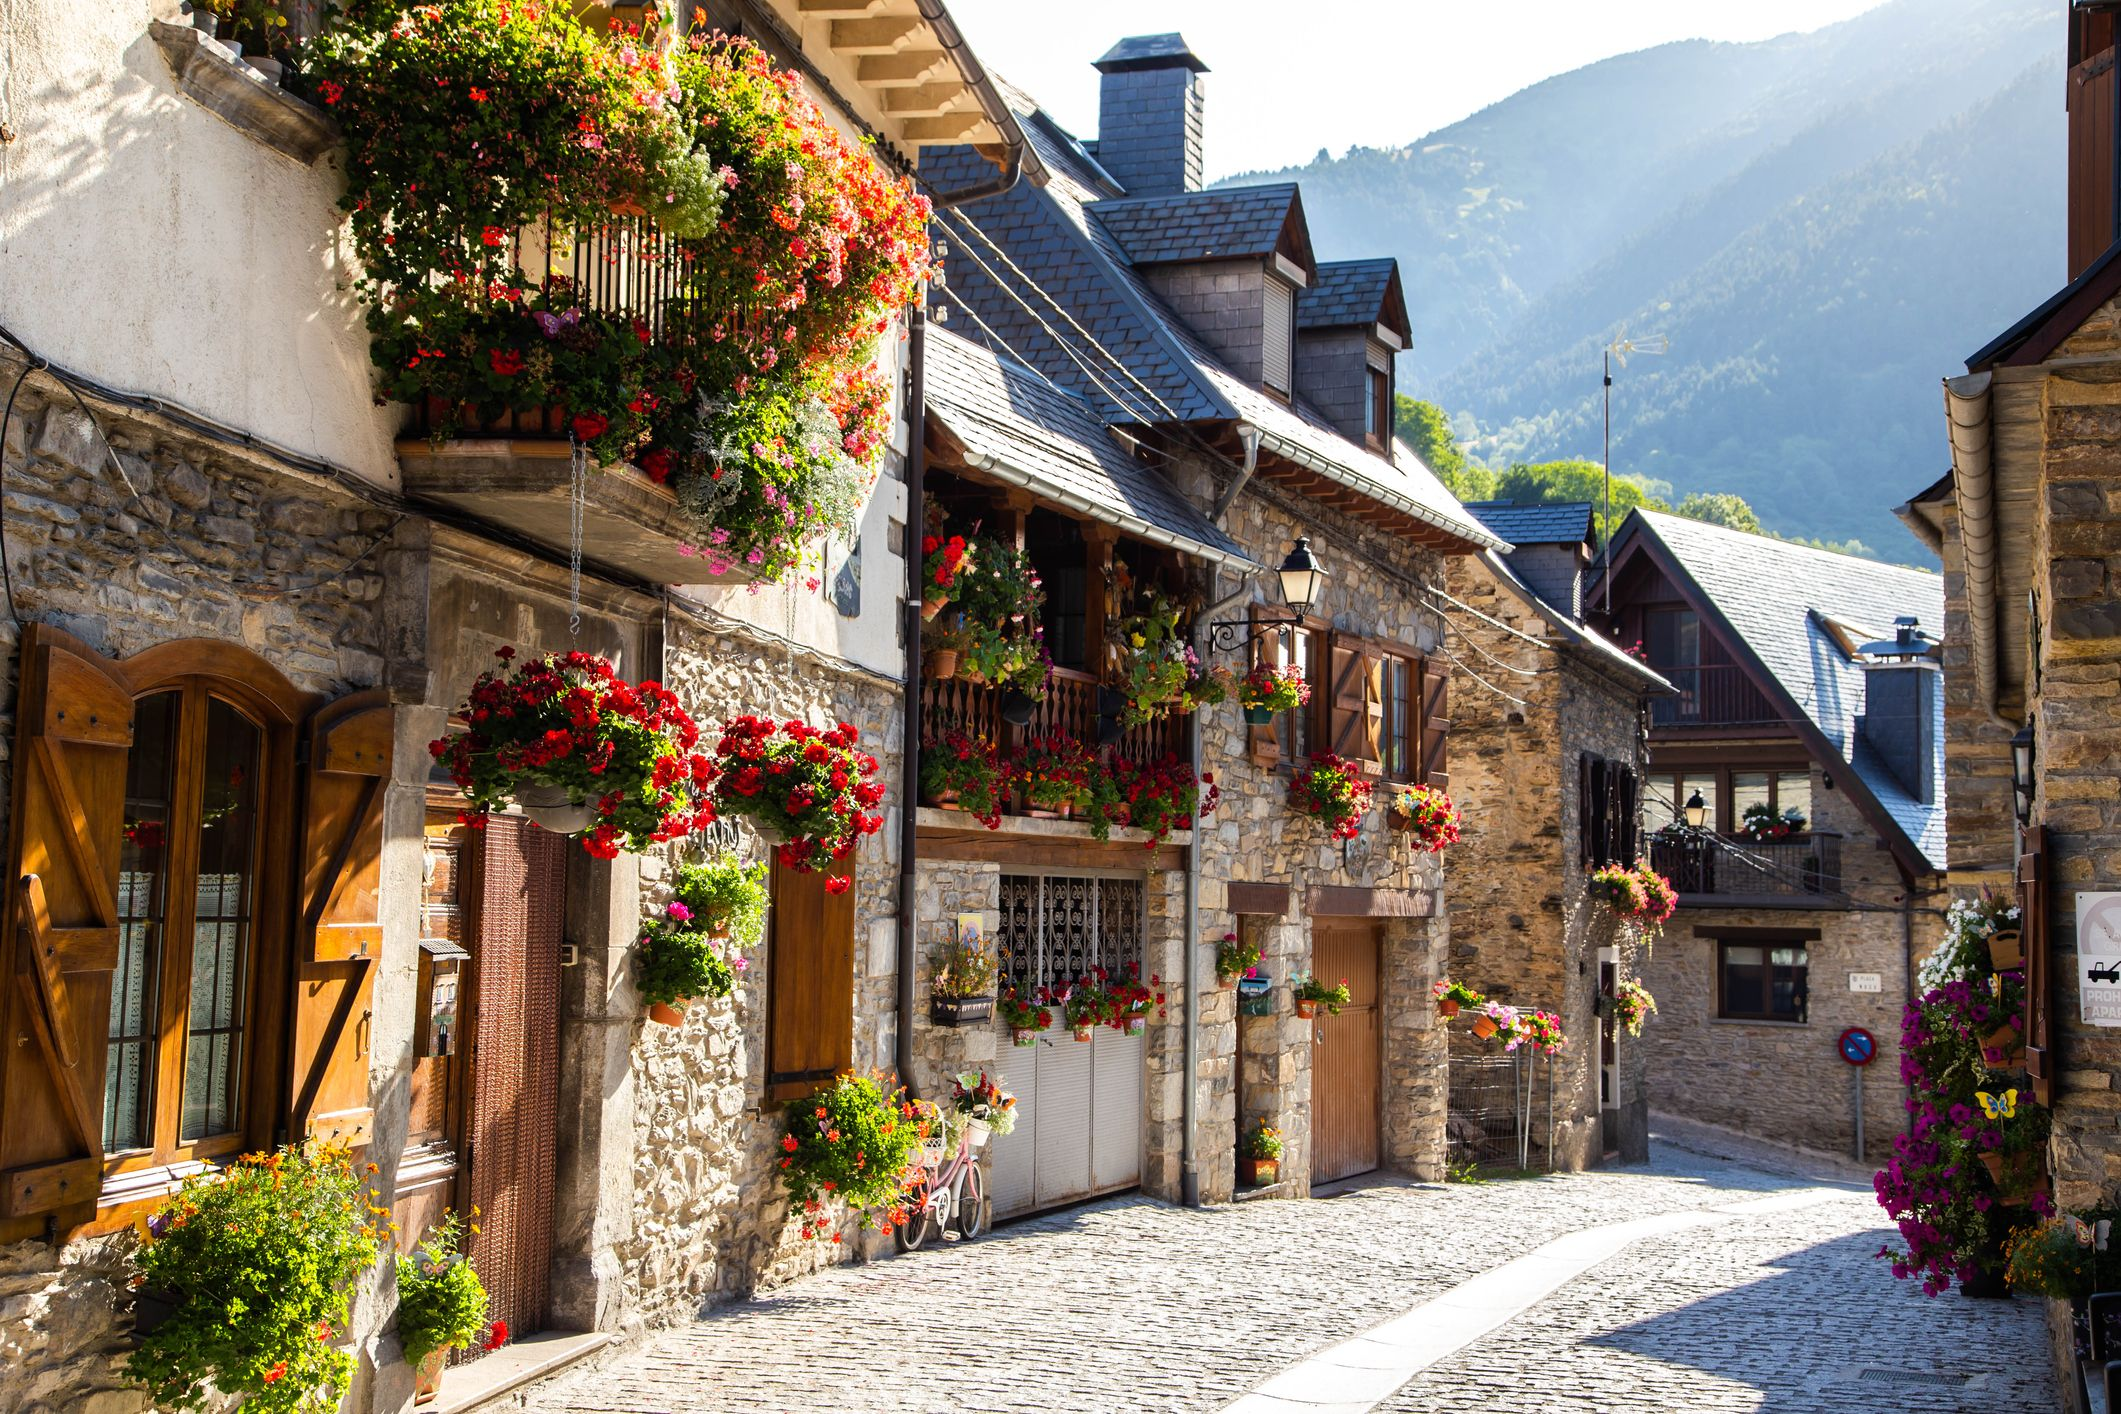 Tired of Your One-Bedroom? You Can Own This Entire Town For Less Than A U.S. Home